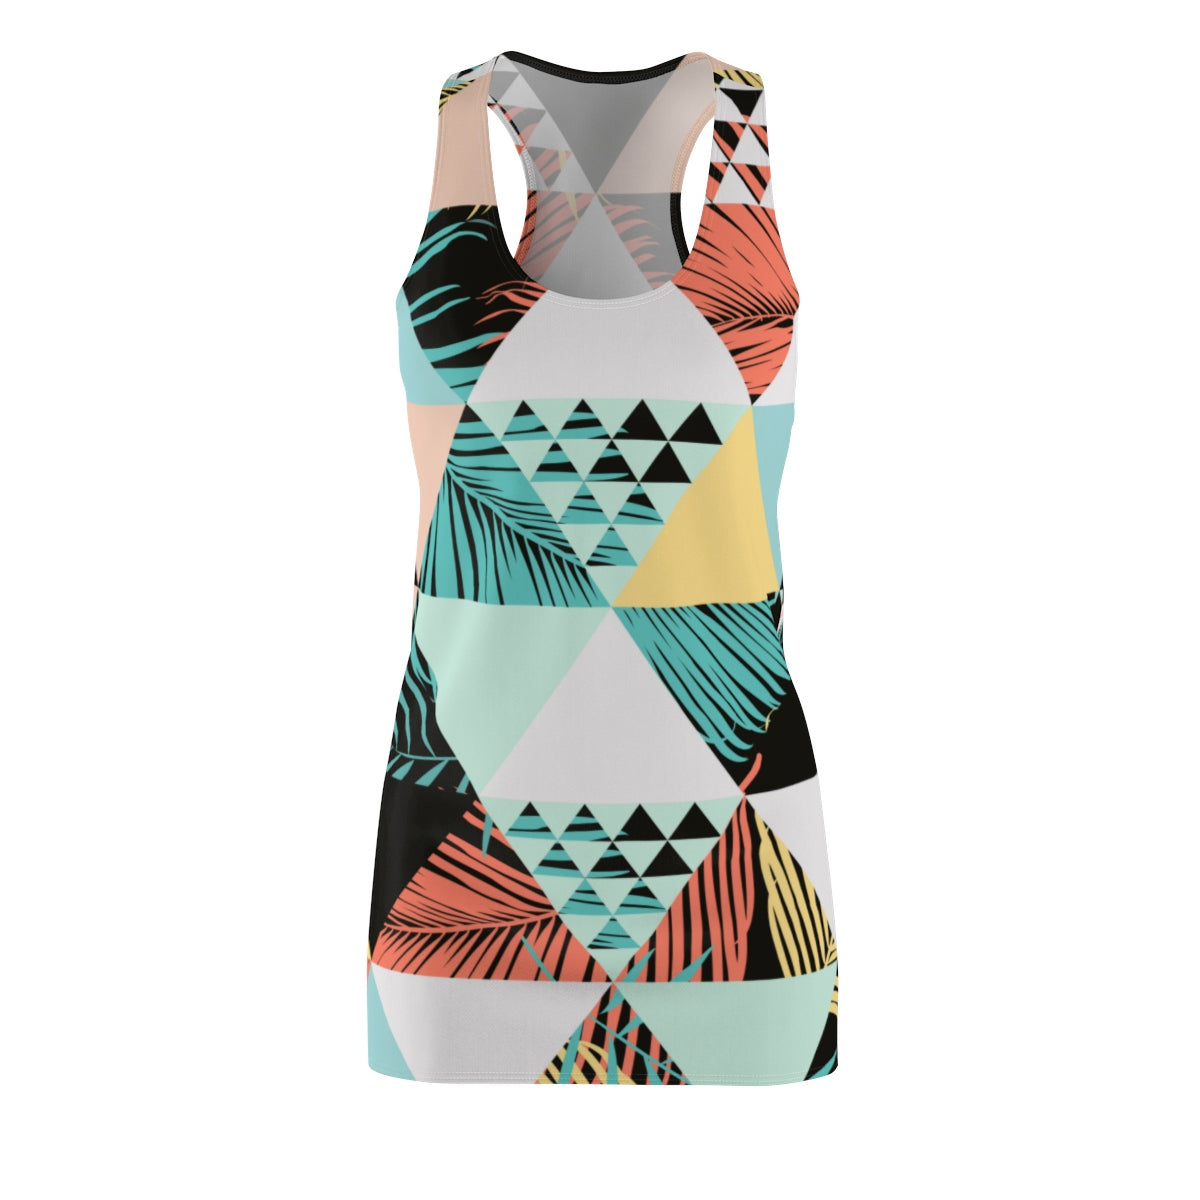 Chasin the Sun - Retro Triangle Palm - Women's Cut & Sew Racerback Summer Beach Cover Up